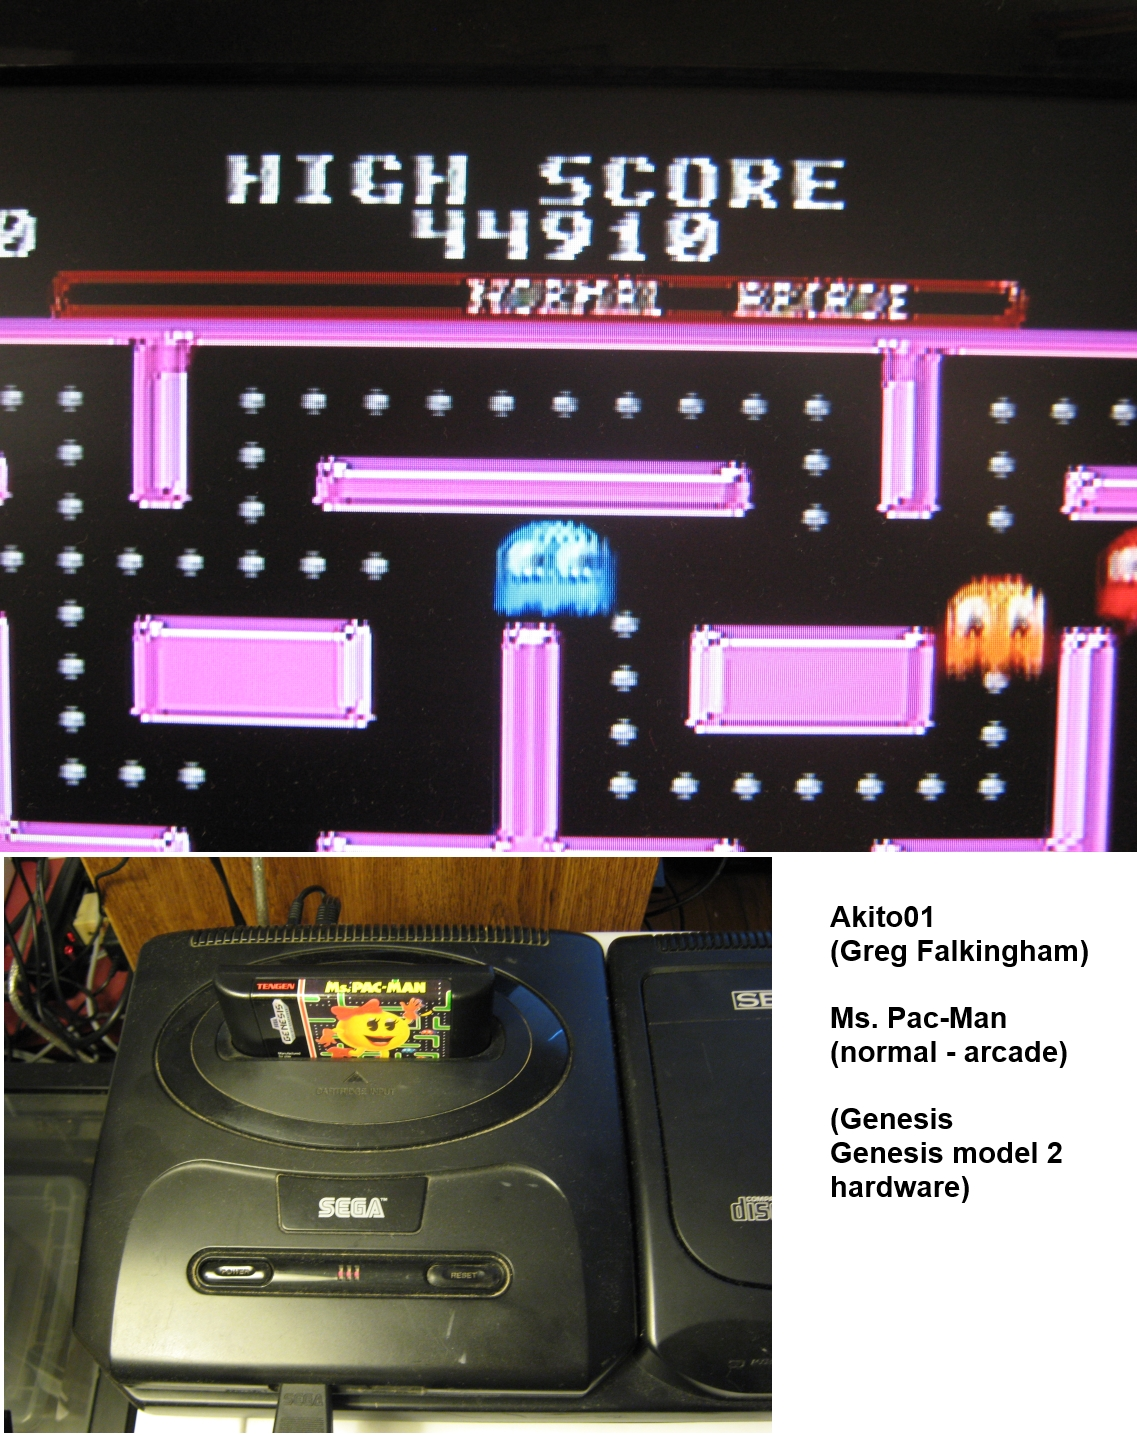 Ms. Pac-Man 44,910 points